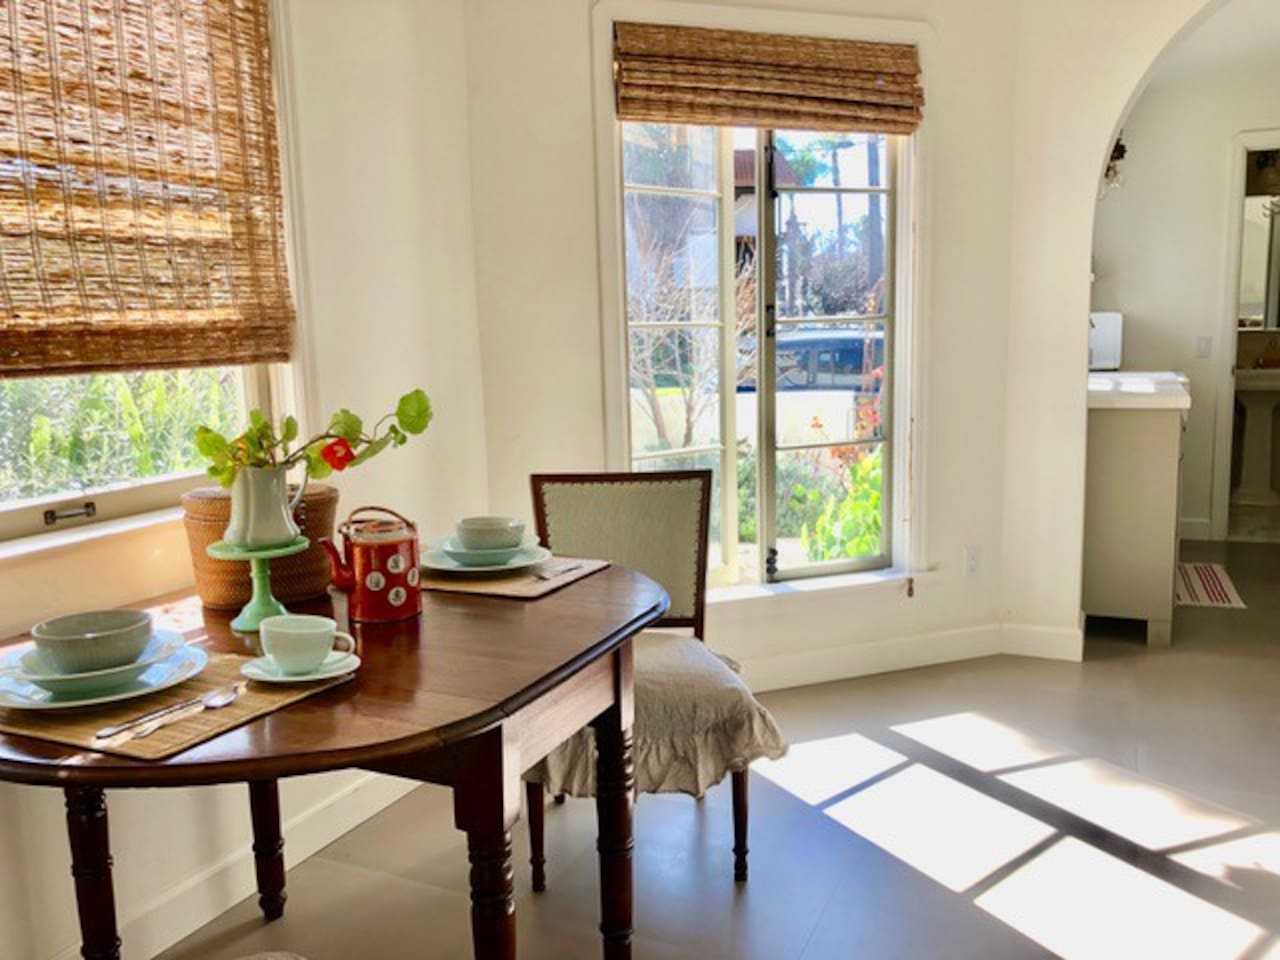 1 BR / 1 BA Bright and breezy Dining space that has a beautiful view  of the rear garden